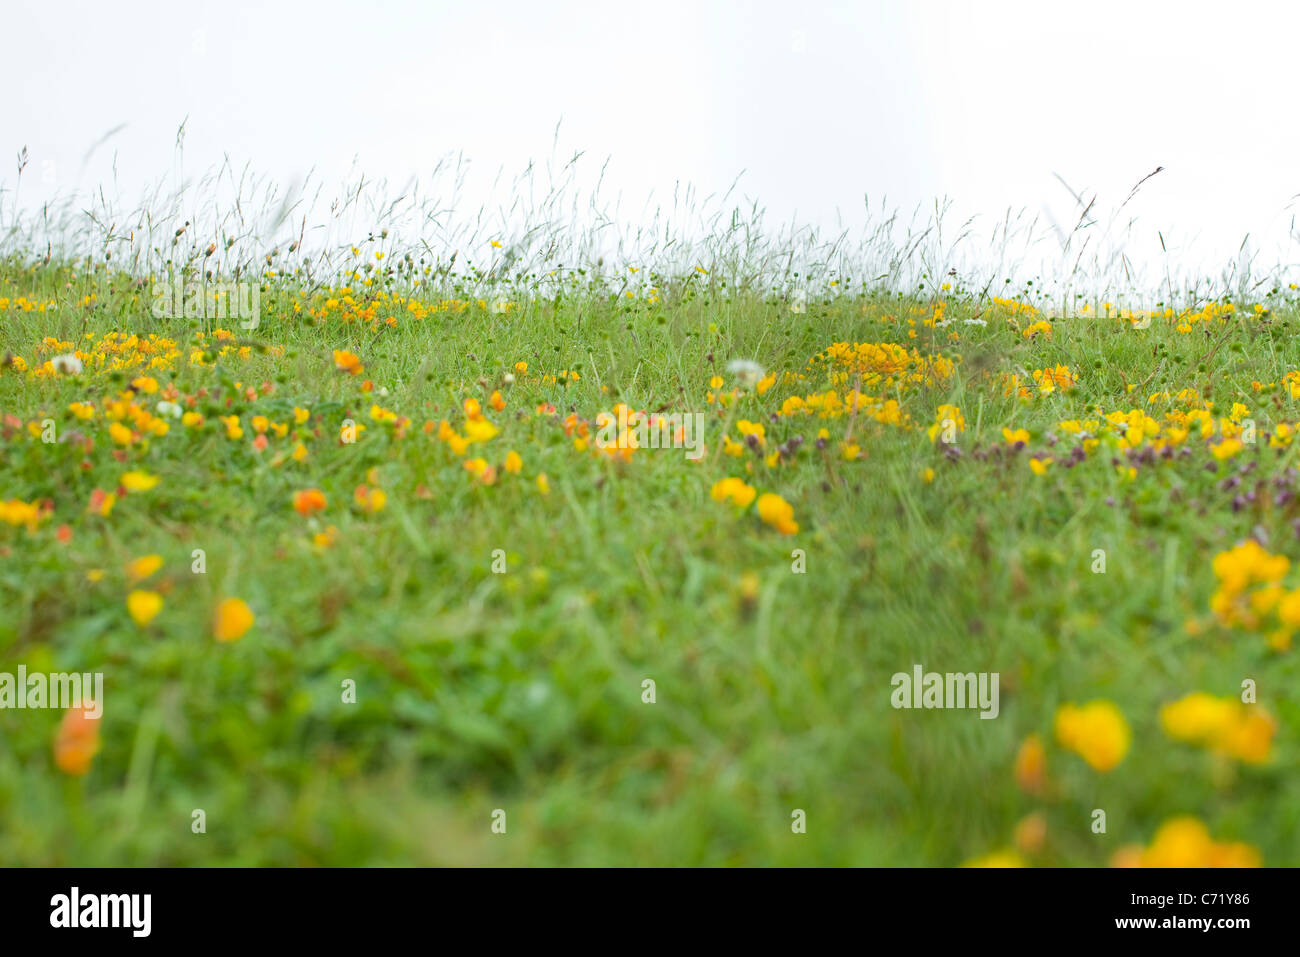 Meadow with wildflowers - Stock Image